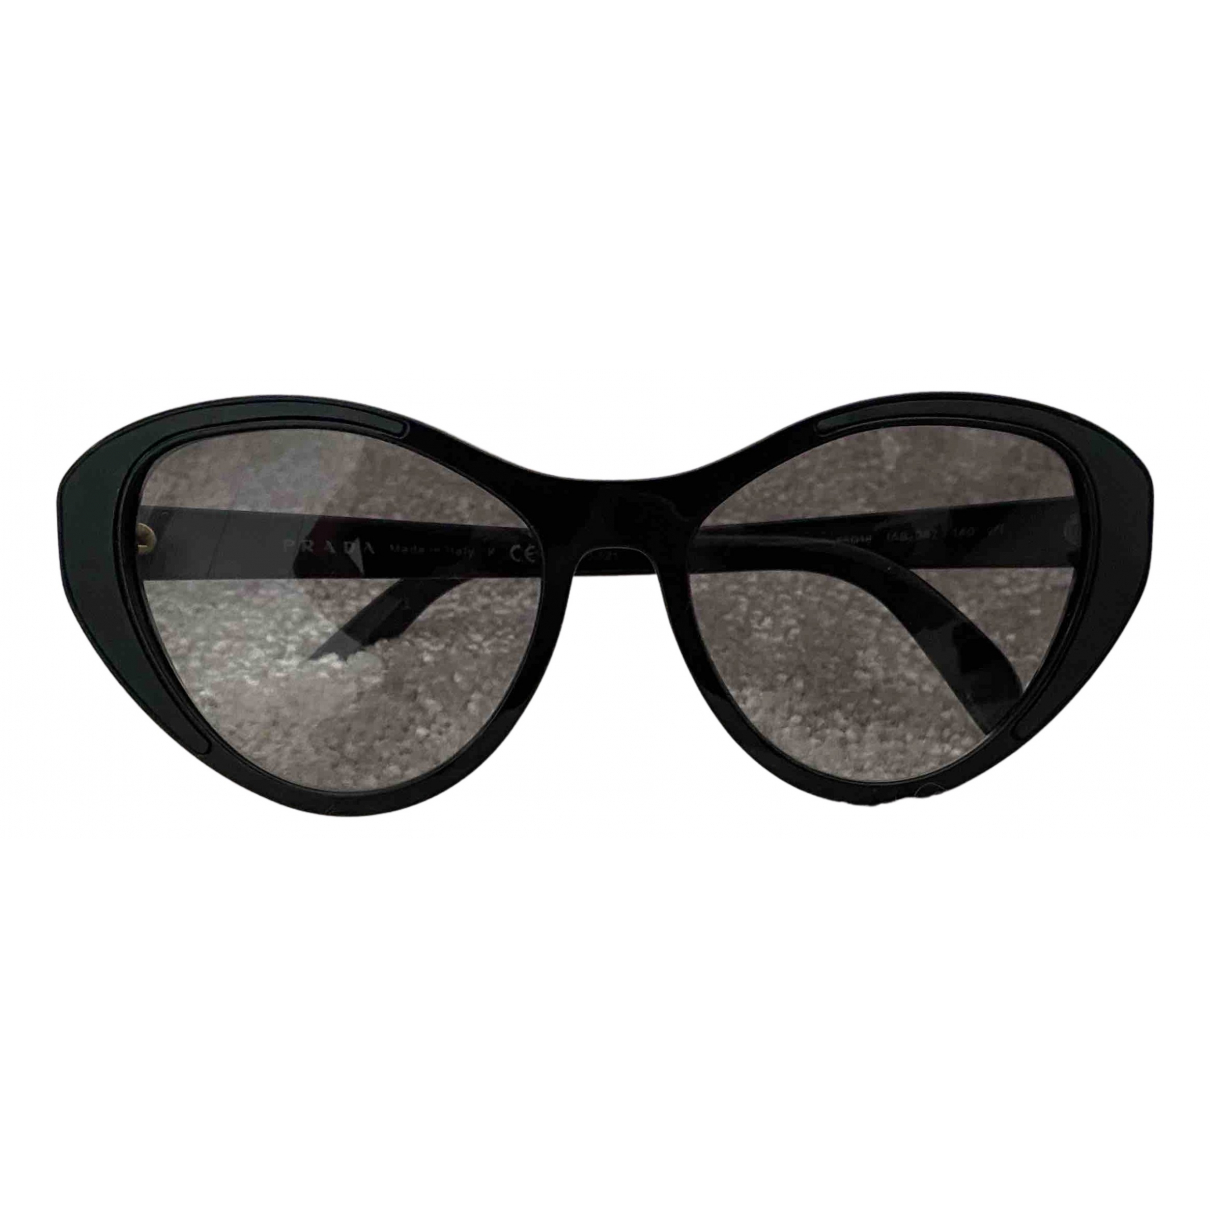 Prada N Black Sunglasses for Women N